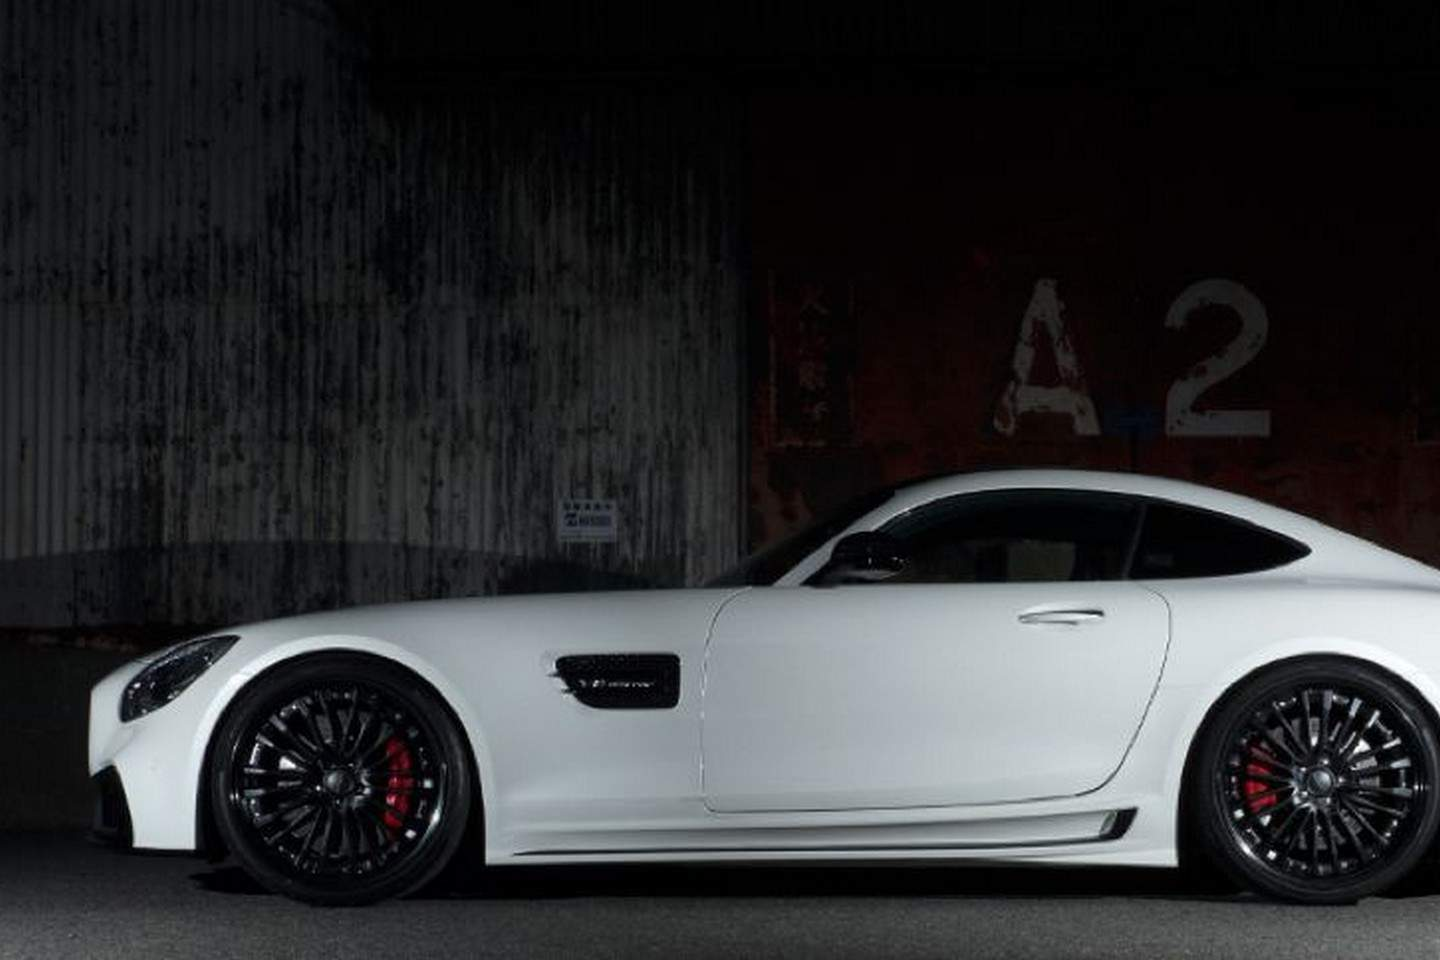 Wald-delivers-aero-tuning-for-the-Mercedes-AMG-GT-3